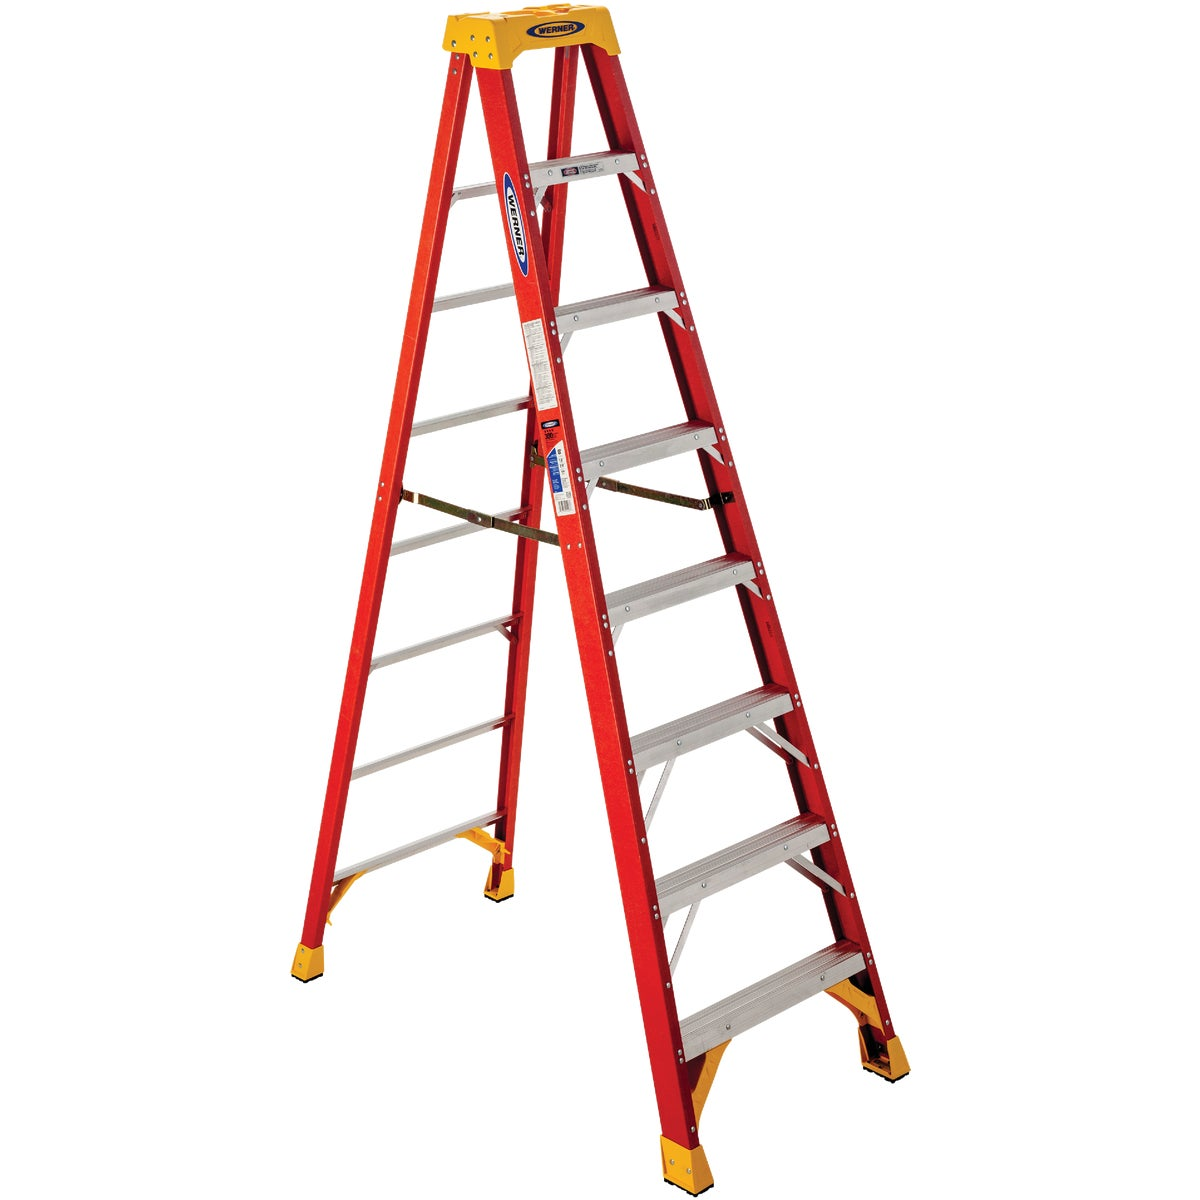 T-1A 8' FBGL STEPLADDER - 6208 by Werner Co